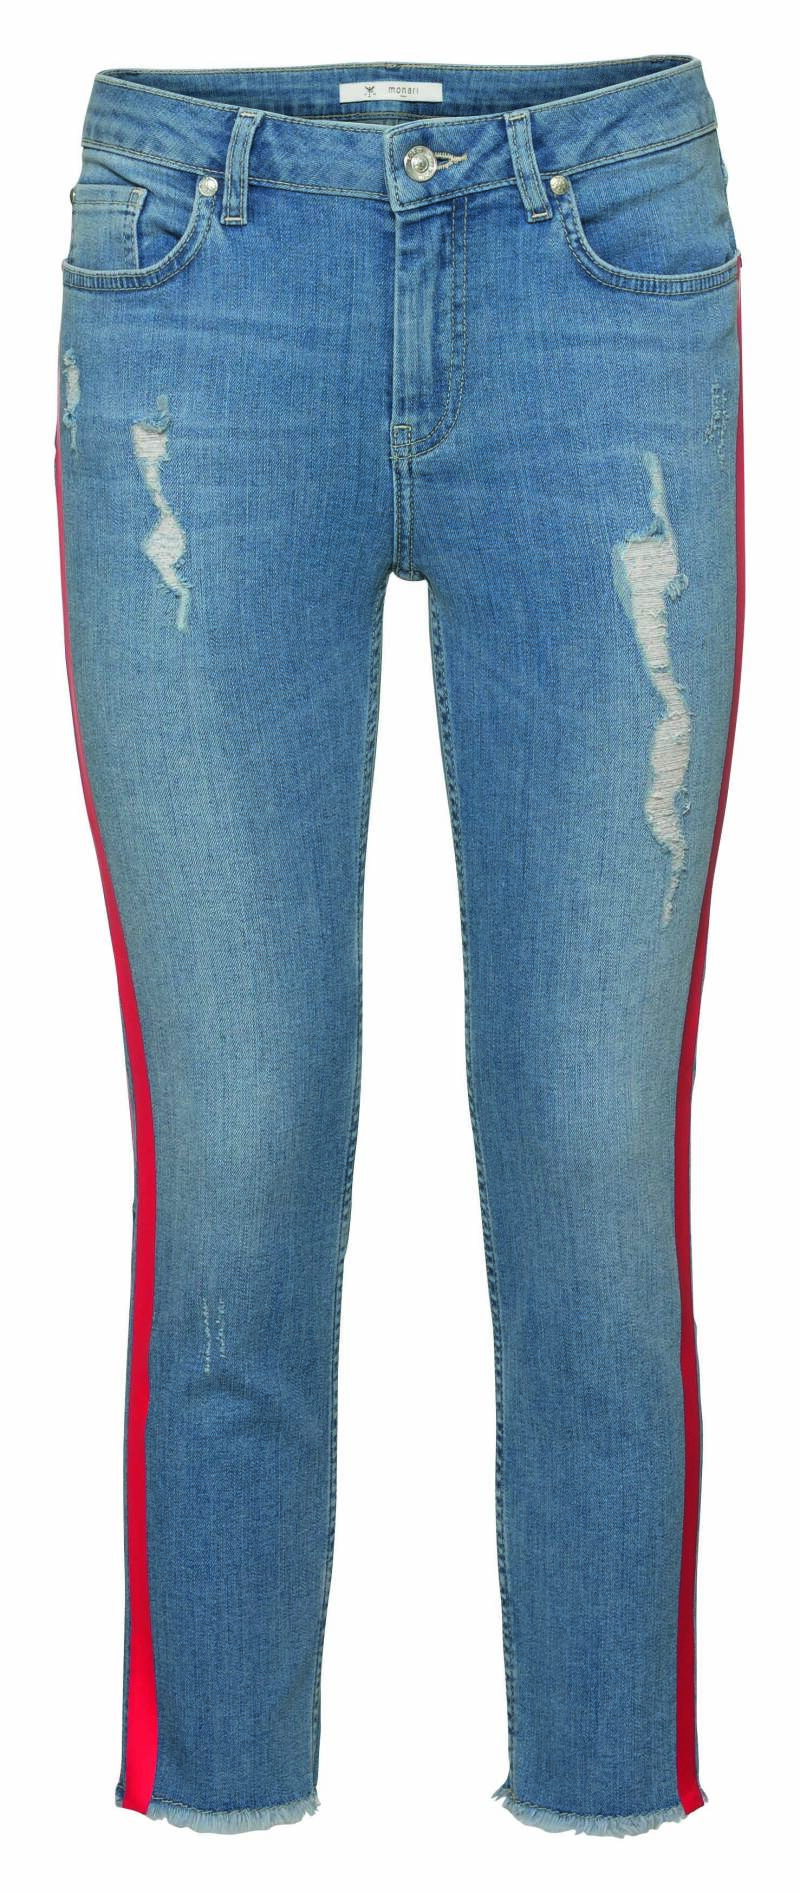 Monari jeans  Add On 404489 denim -002991